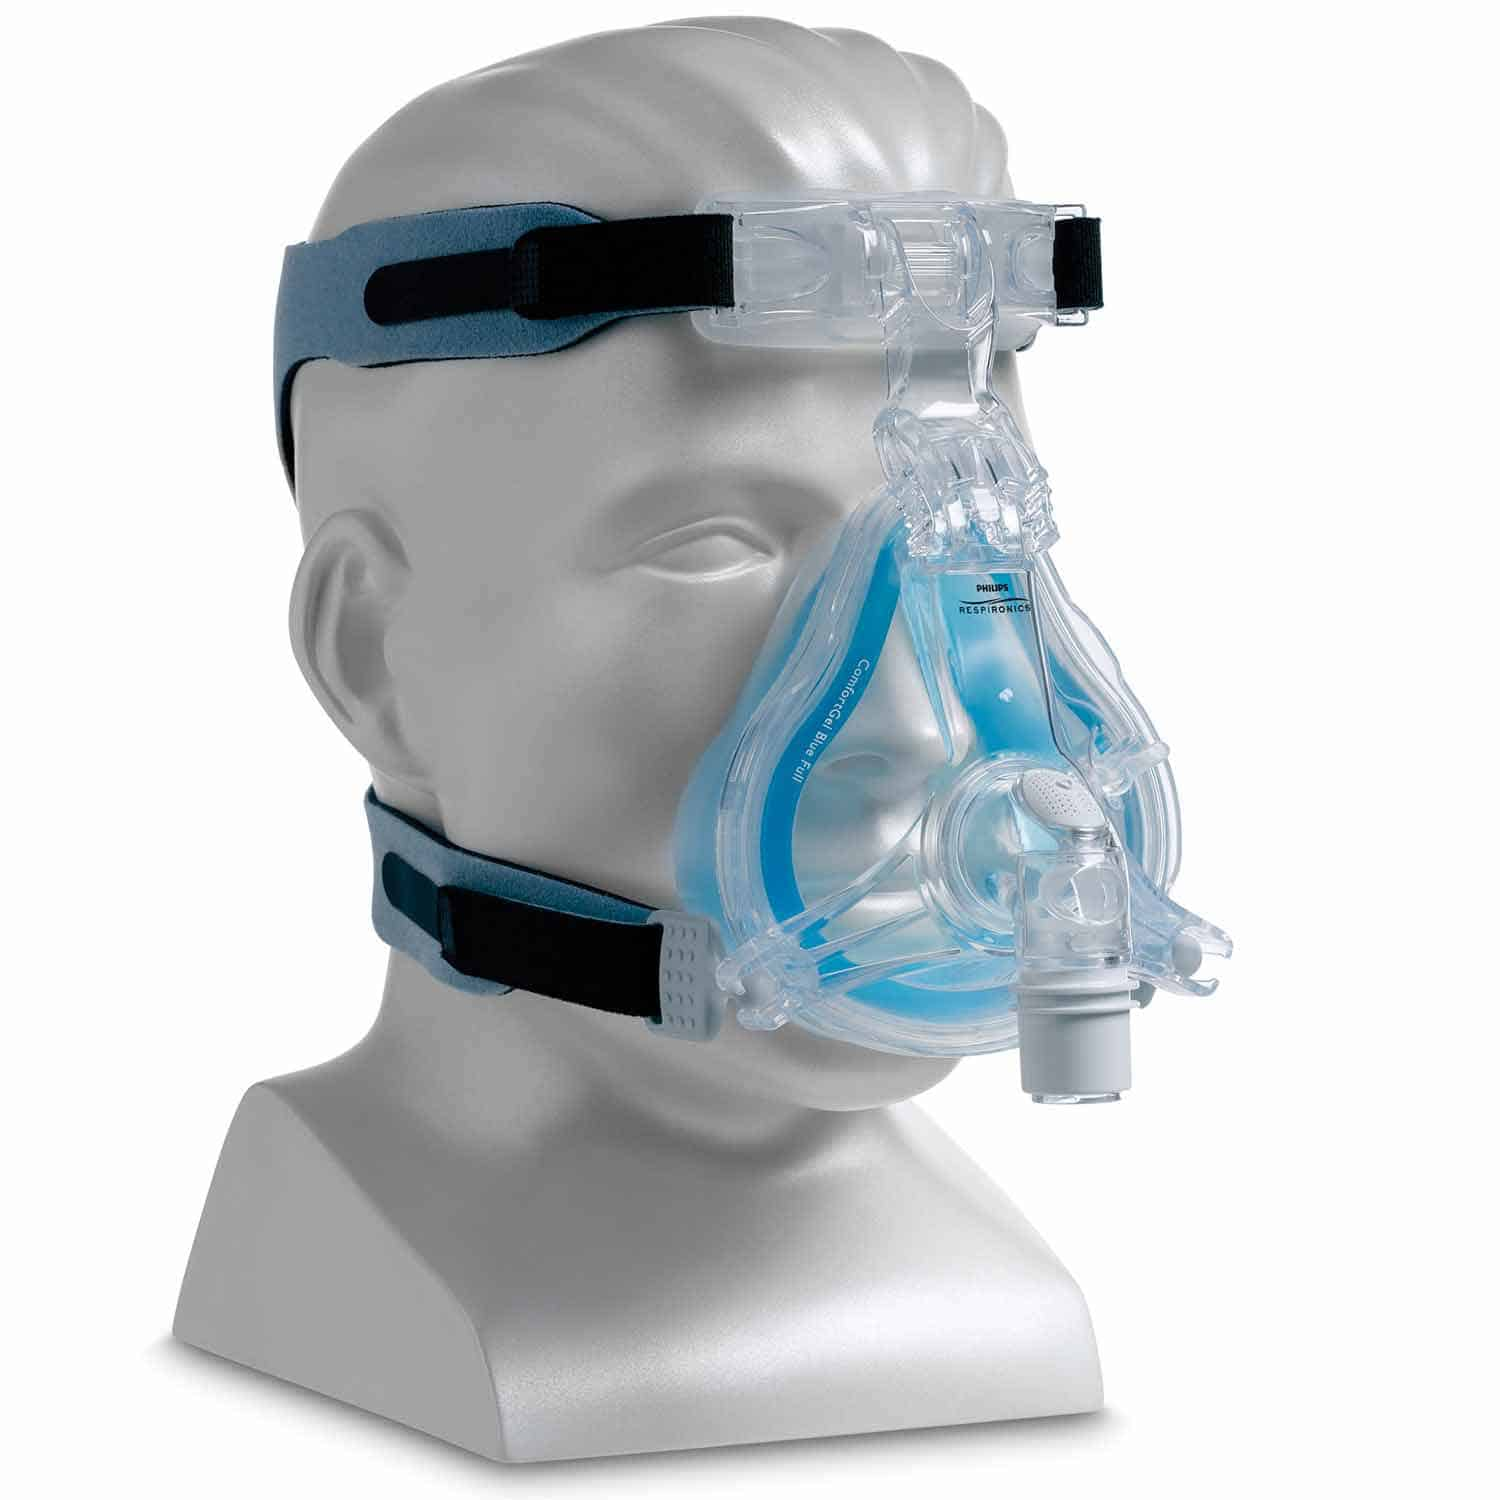 6 Best CPAP Masks - Top Brands Reviewed (2019)